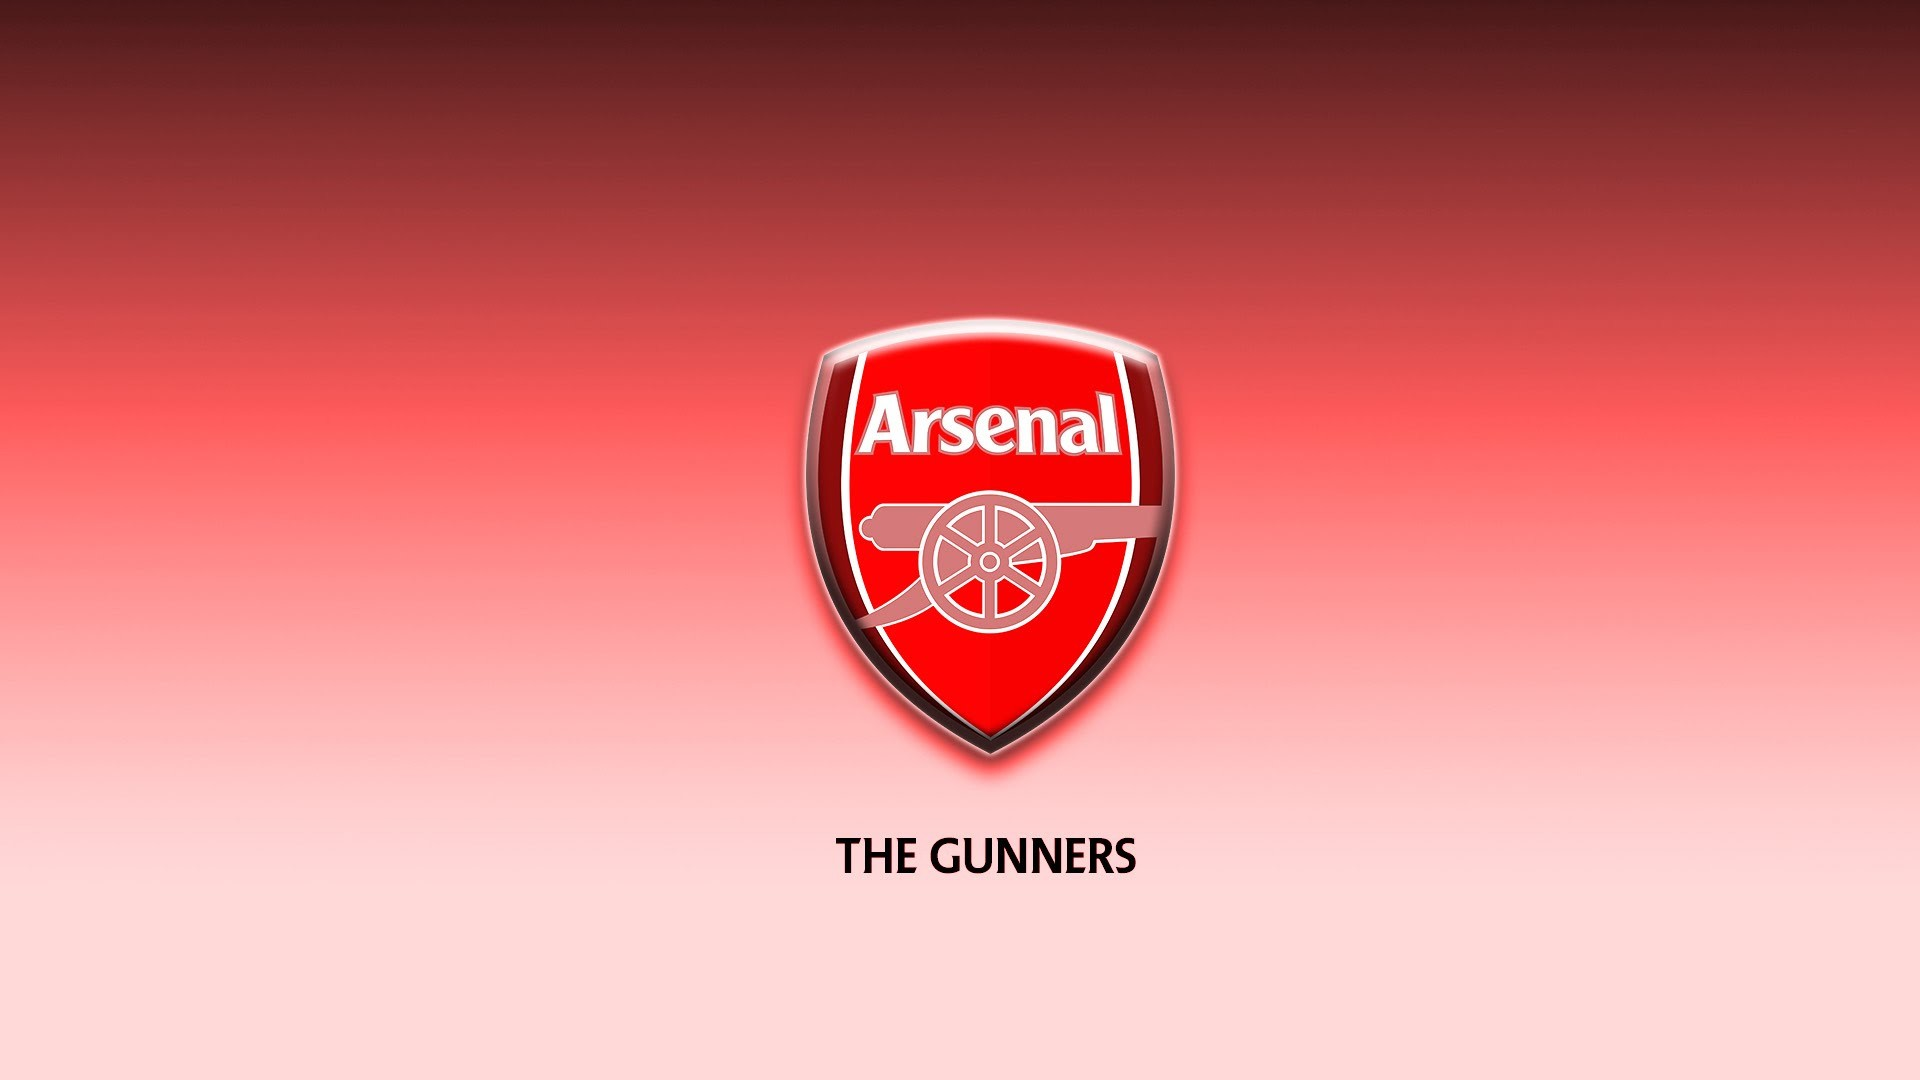 Arsenal Wallpaper Ipad: Arsenal FC Wallpaper 2018 ·①